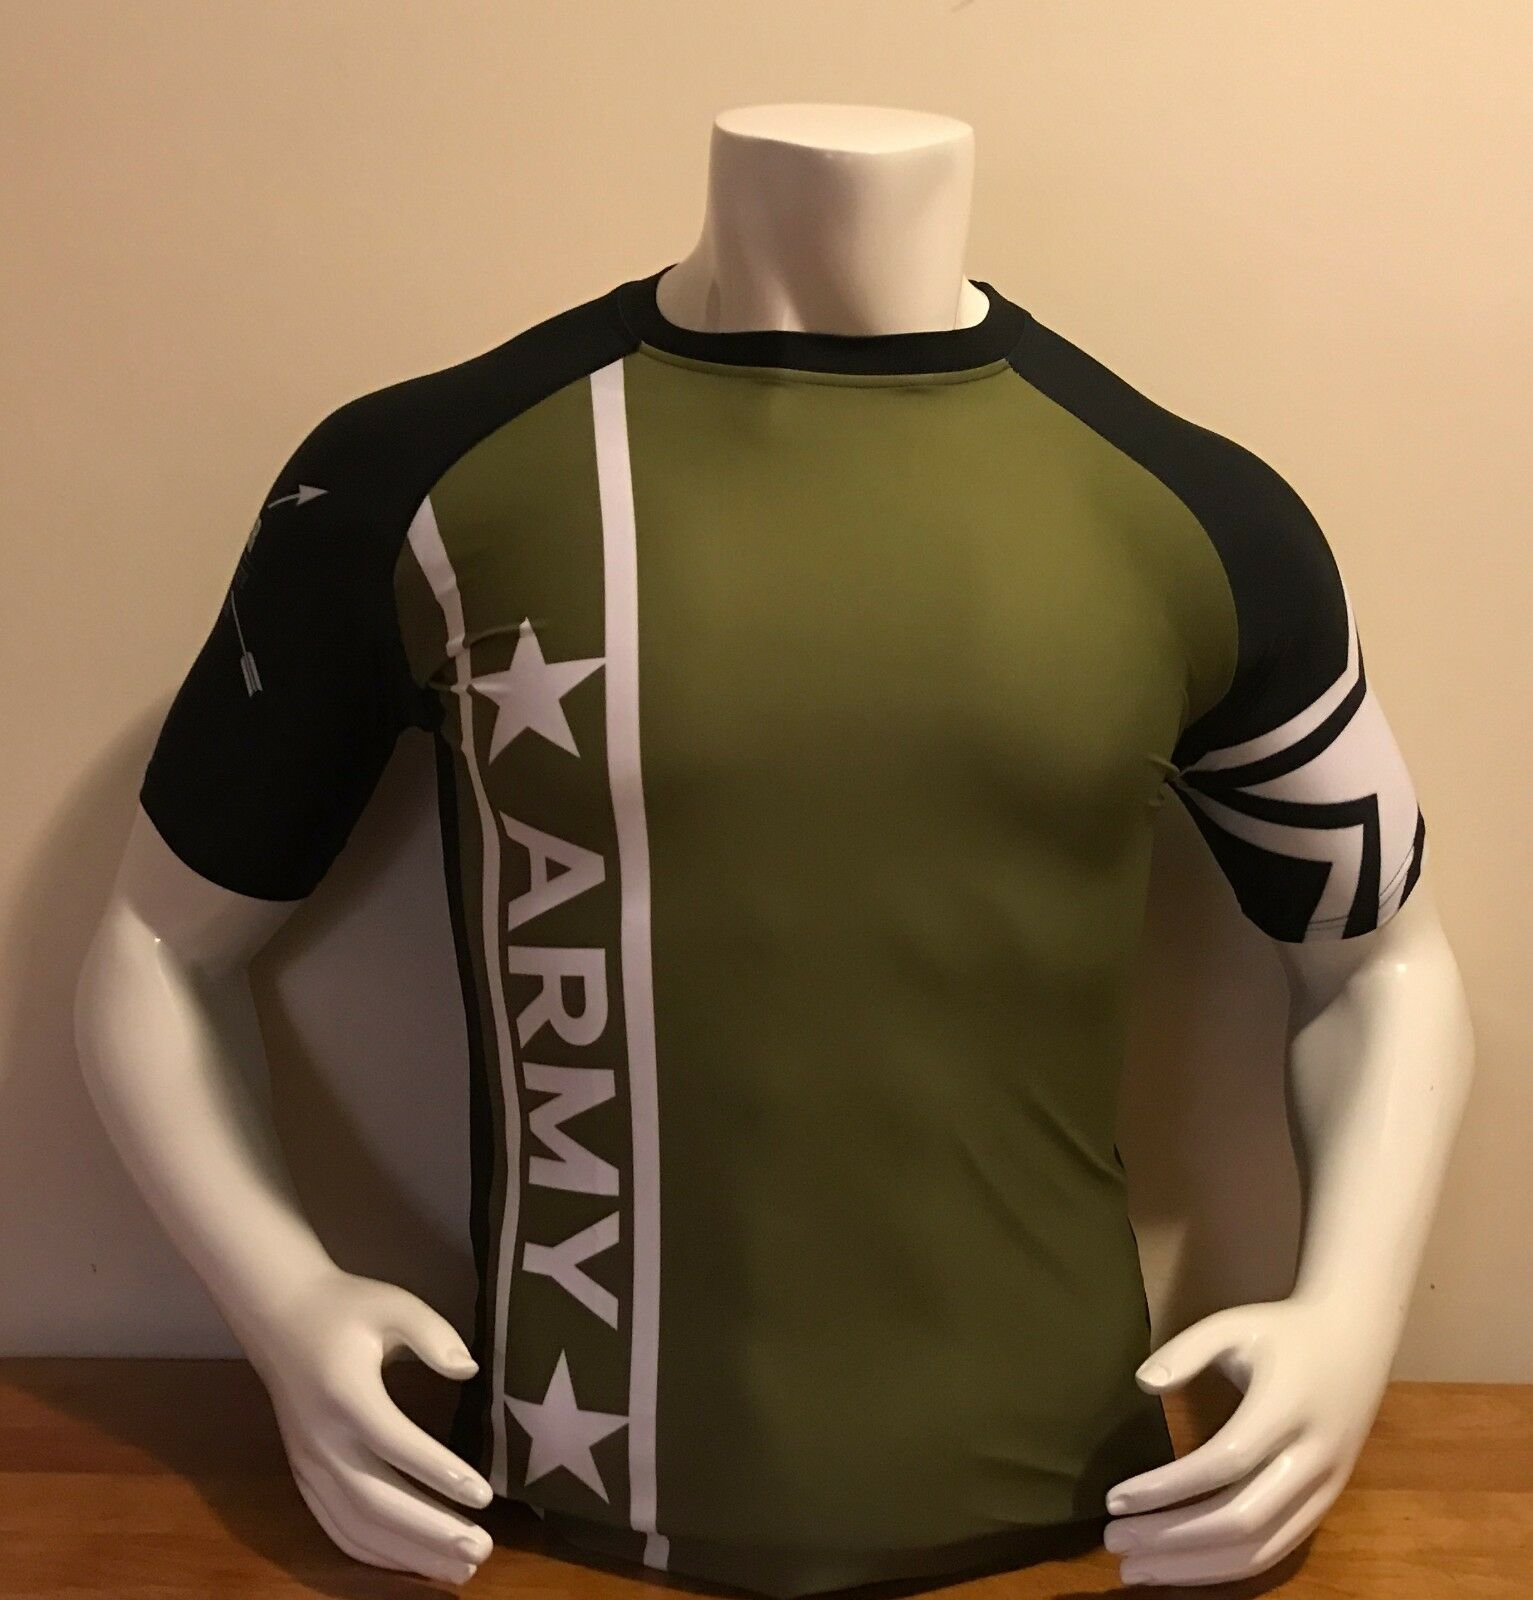 ARMY Rash Guard  for Martial Arts, MMA, BJJ, Jiu Jitsu, running- Limited Edition  not to be missed!